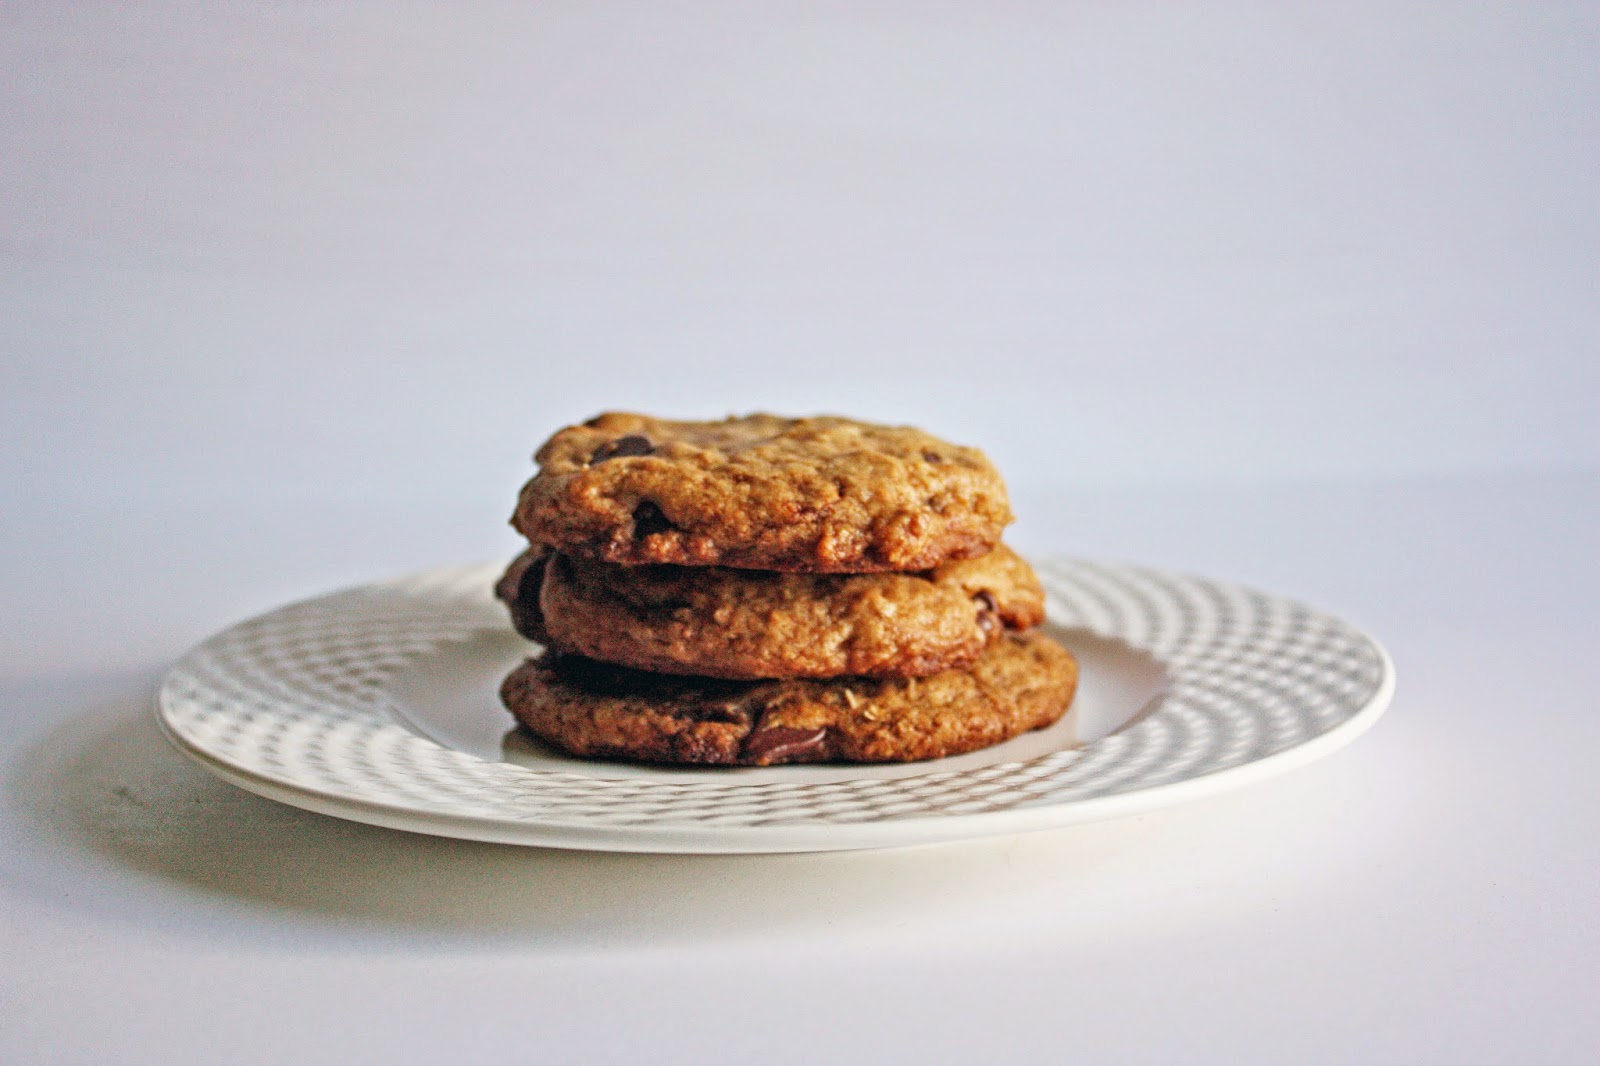 wicked easy vegan chocolate chip cookies just sitting there peacefully like they don't give a fuck